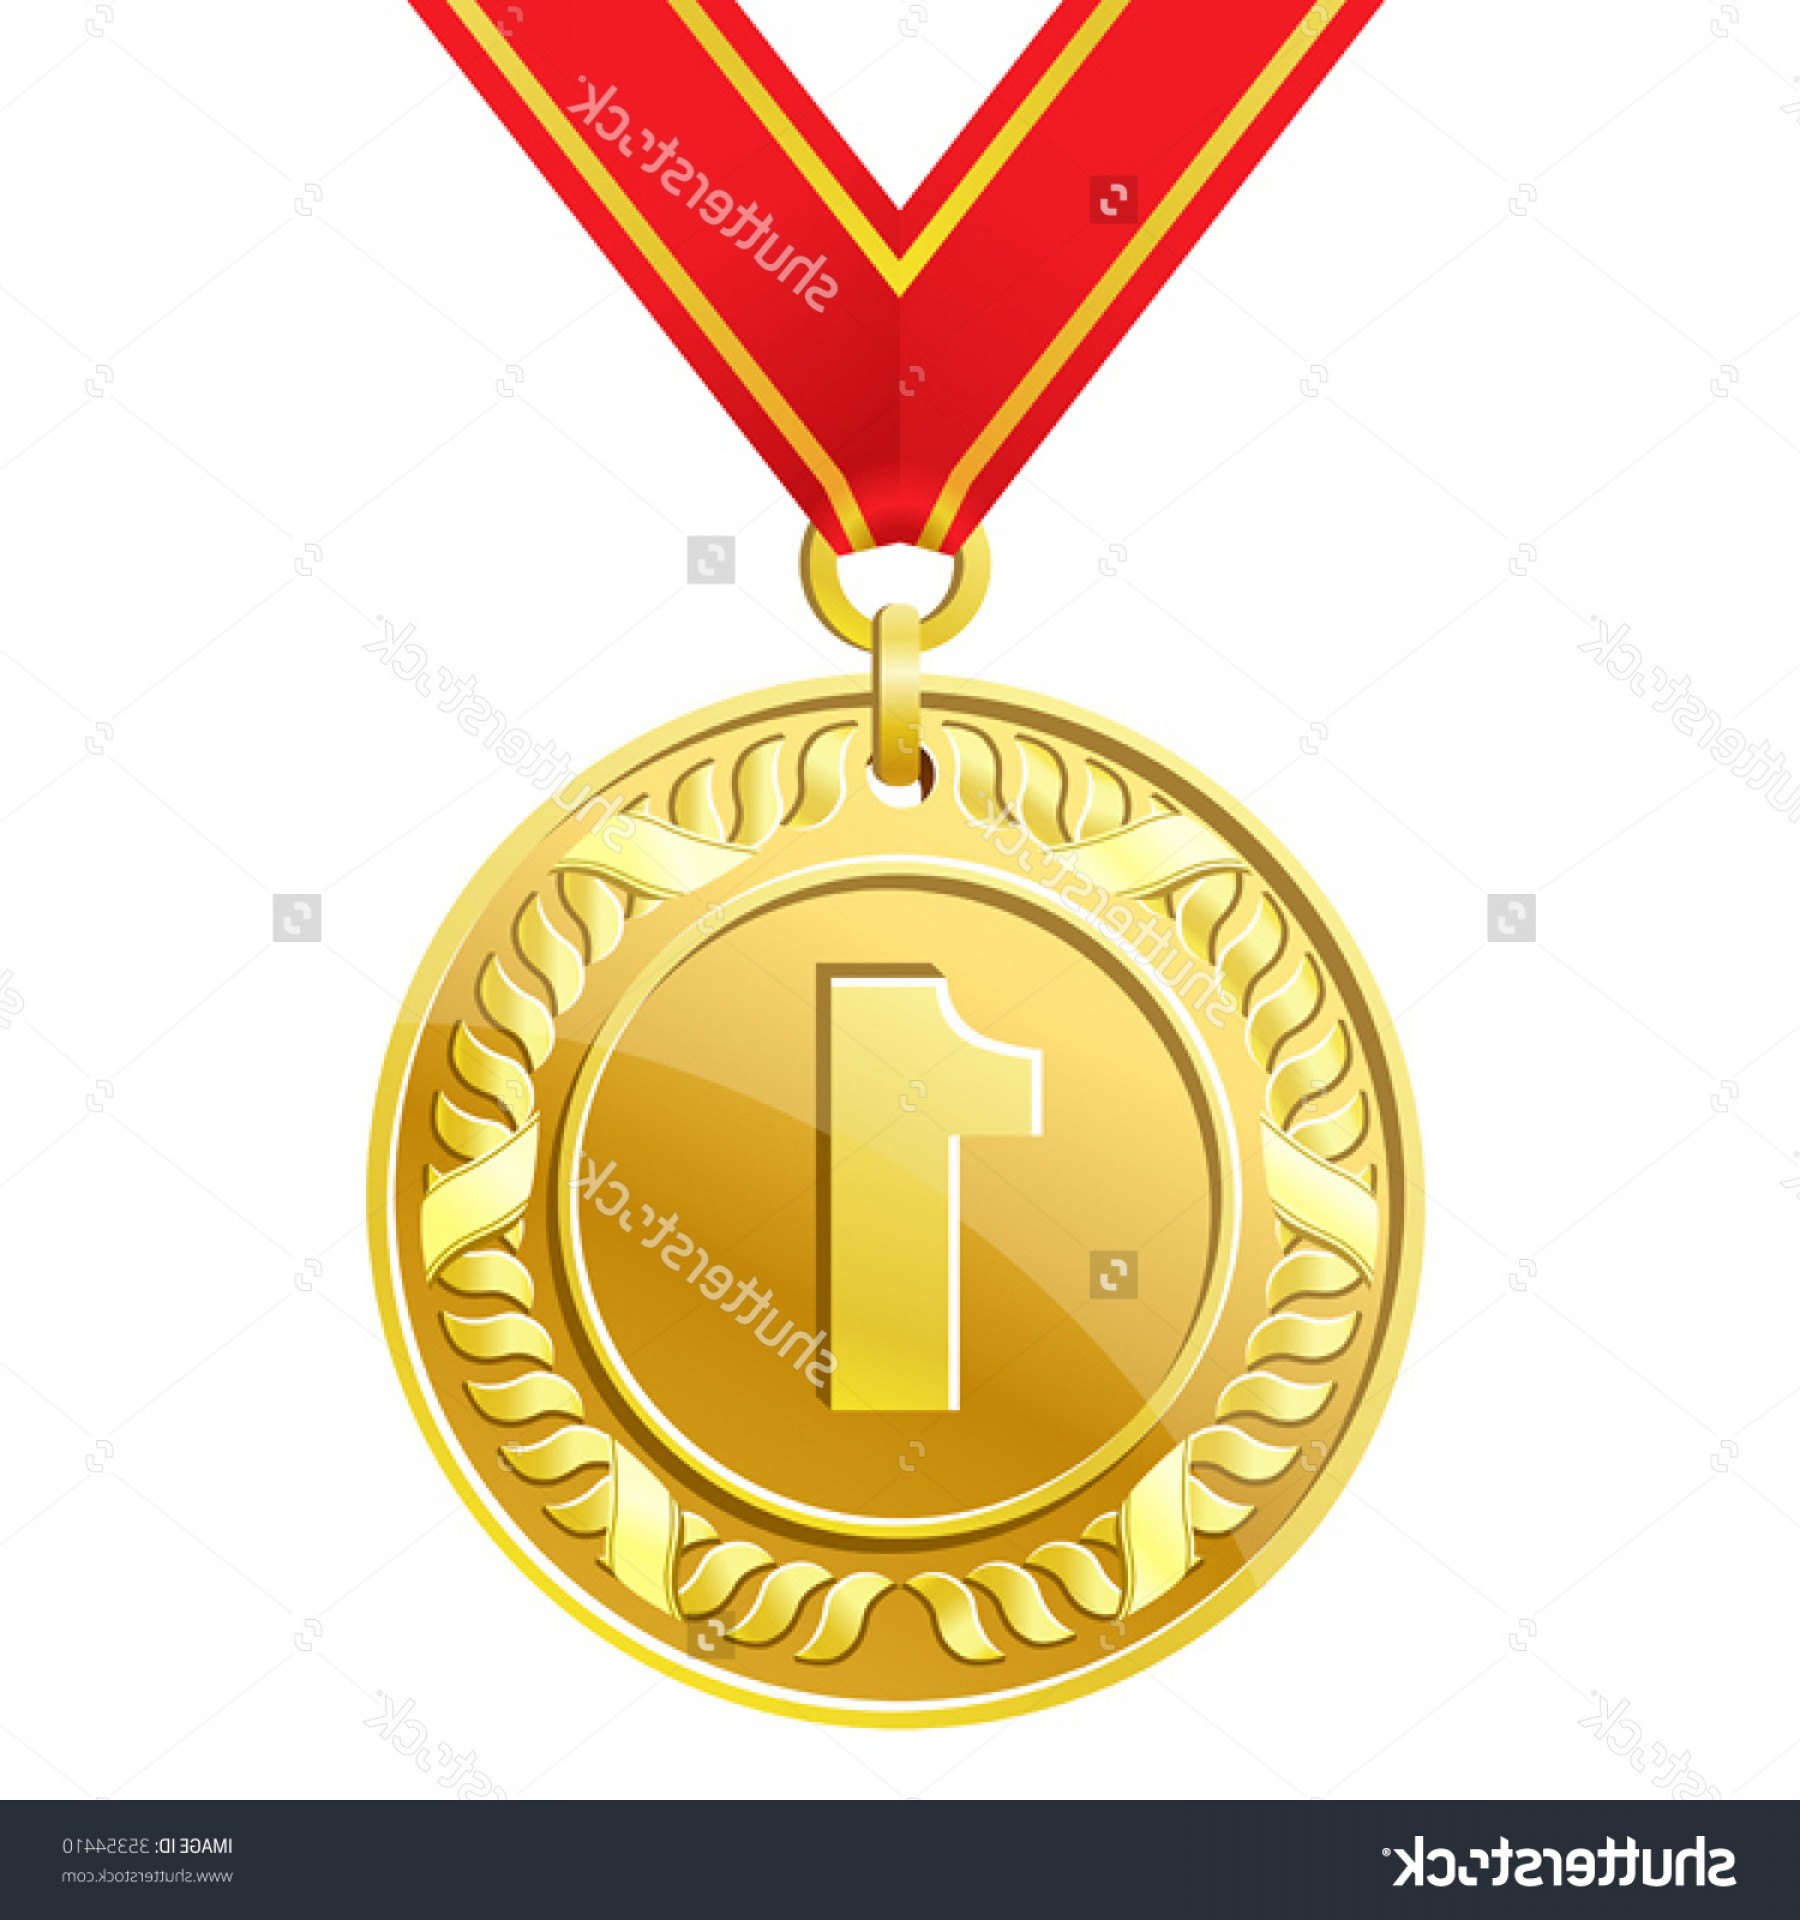 Olympic Gold Medal Clipart Free.